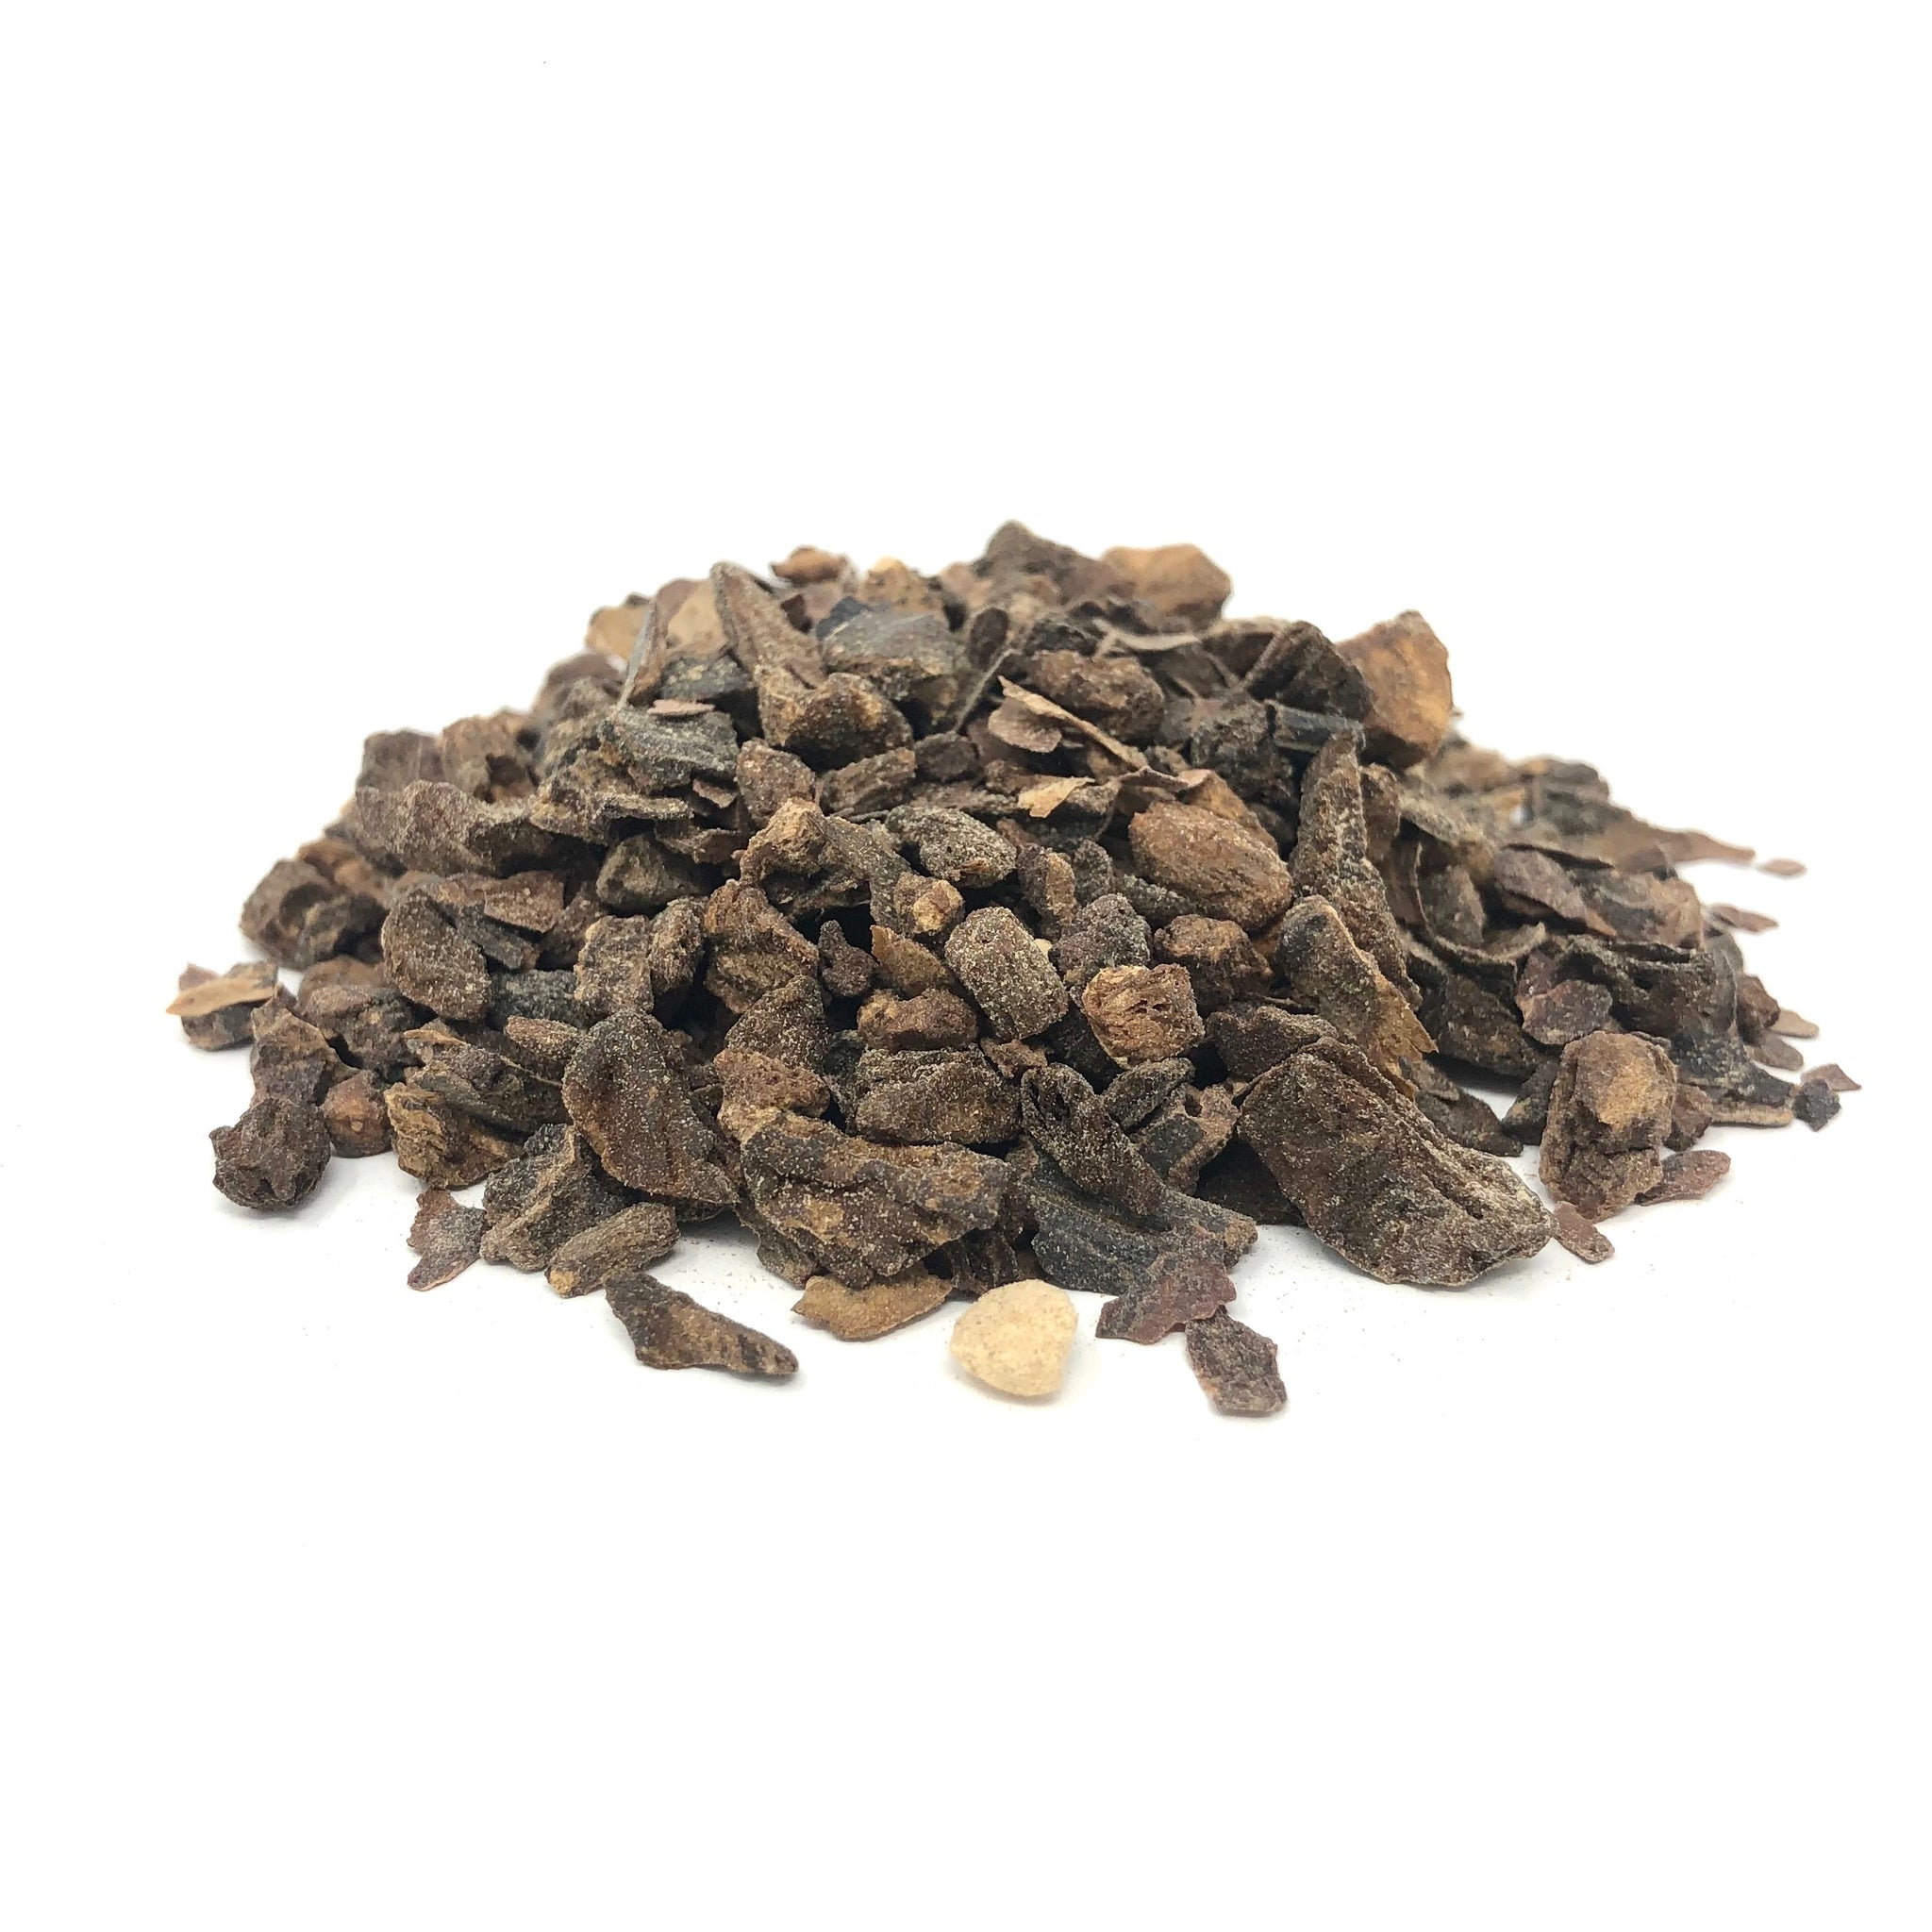 Mocha (Herbal Tea Blend)